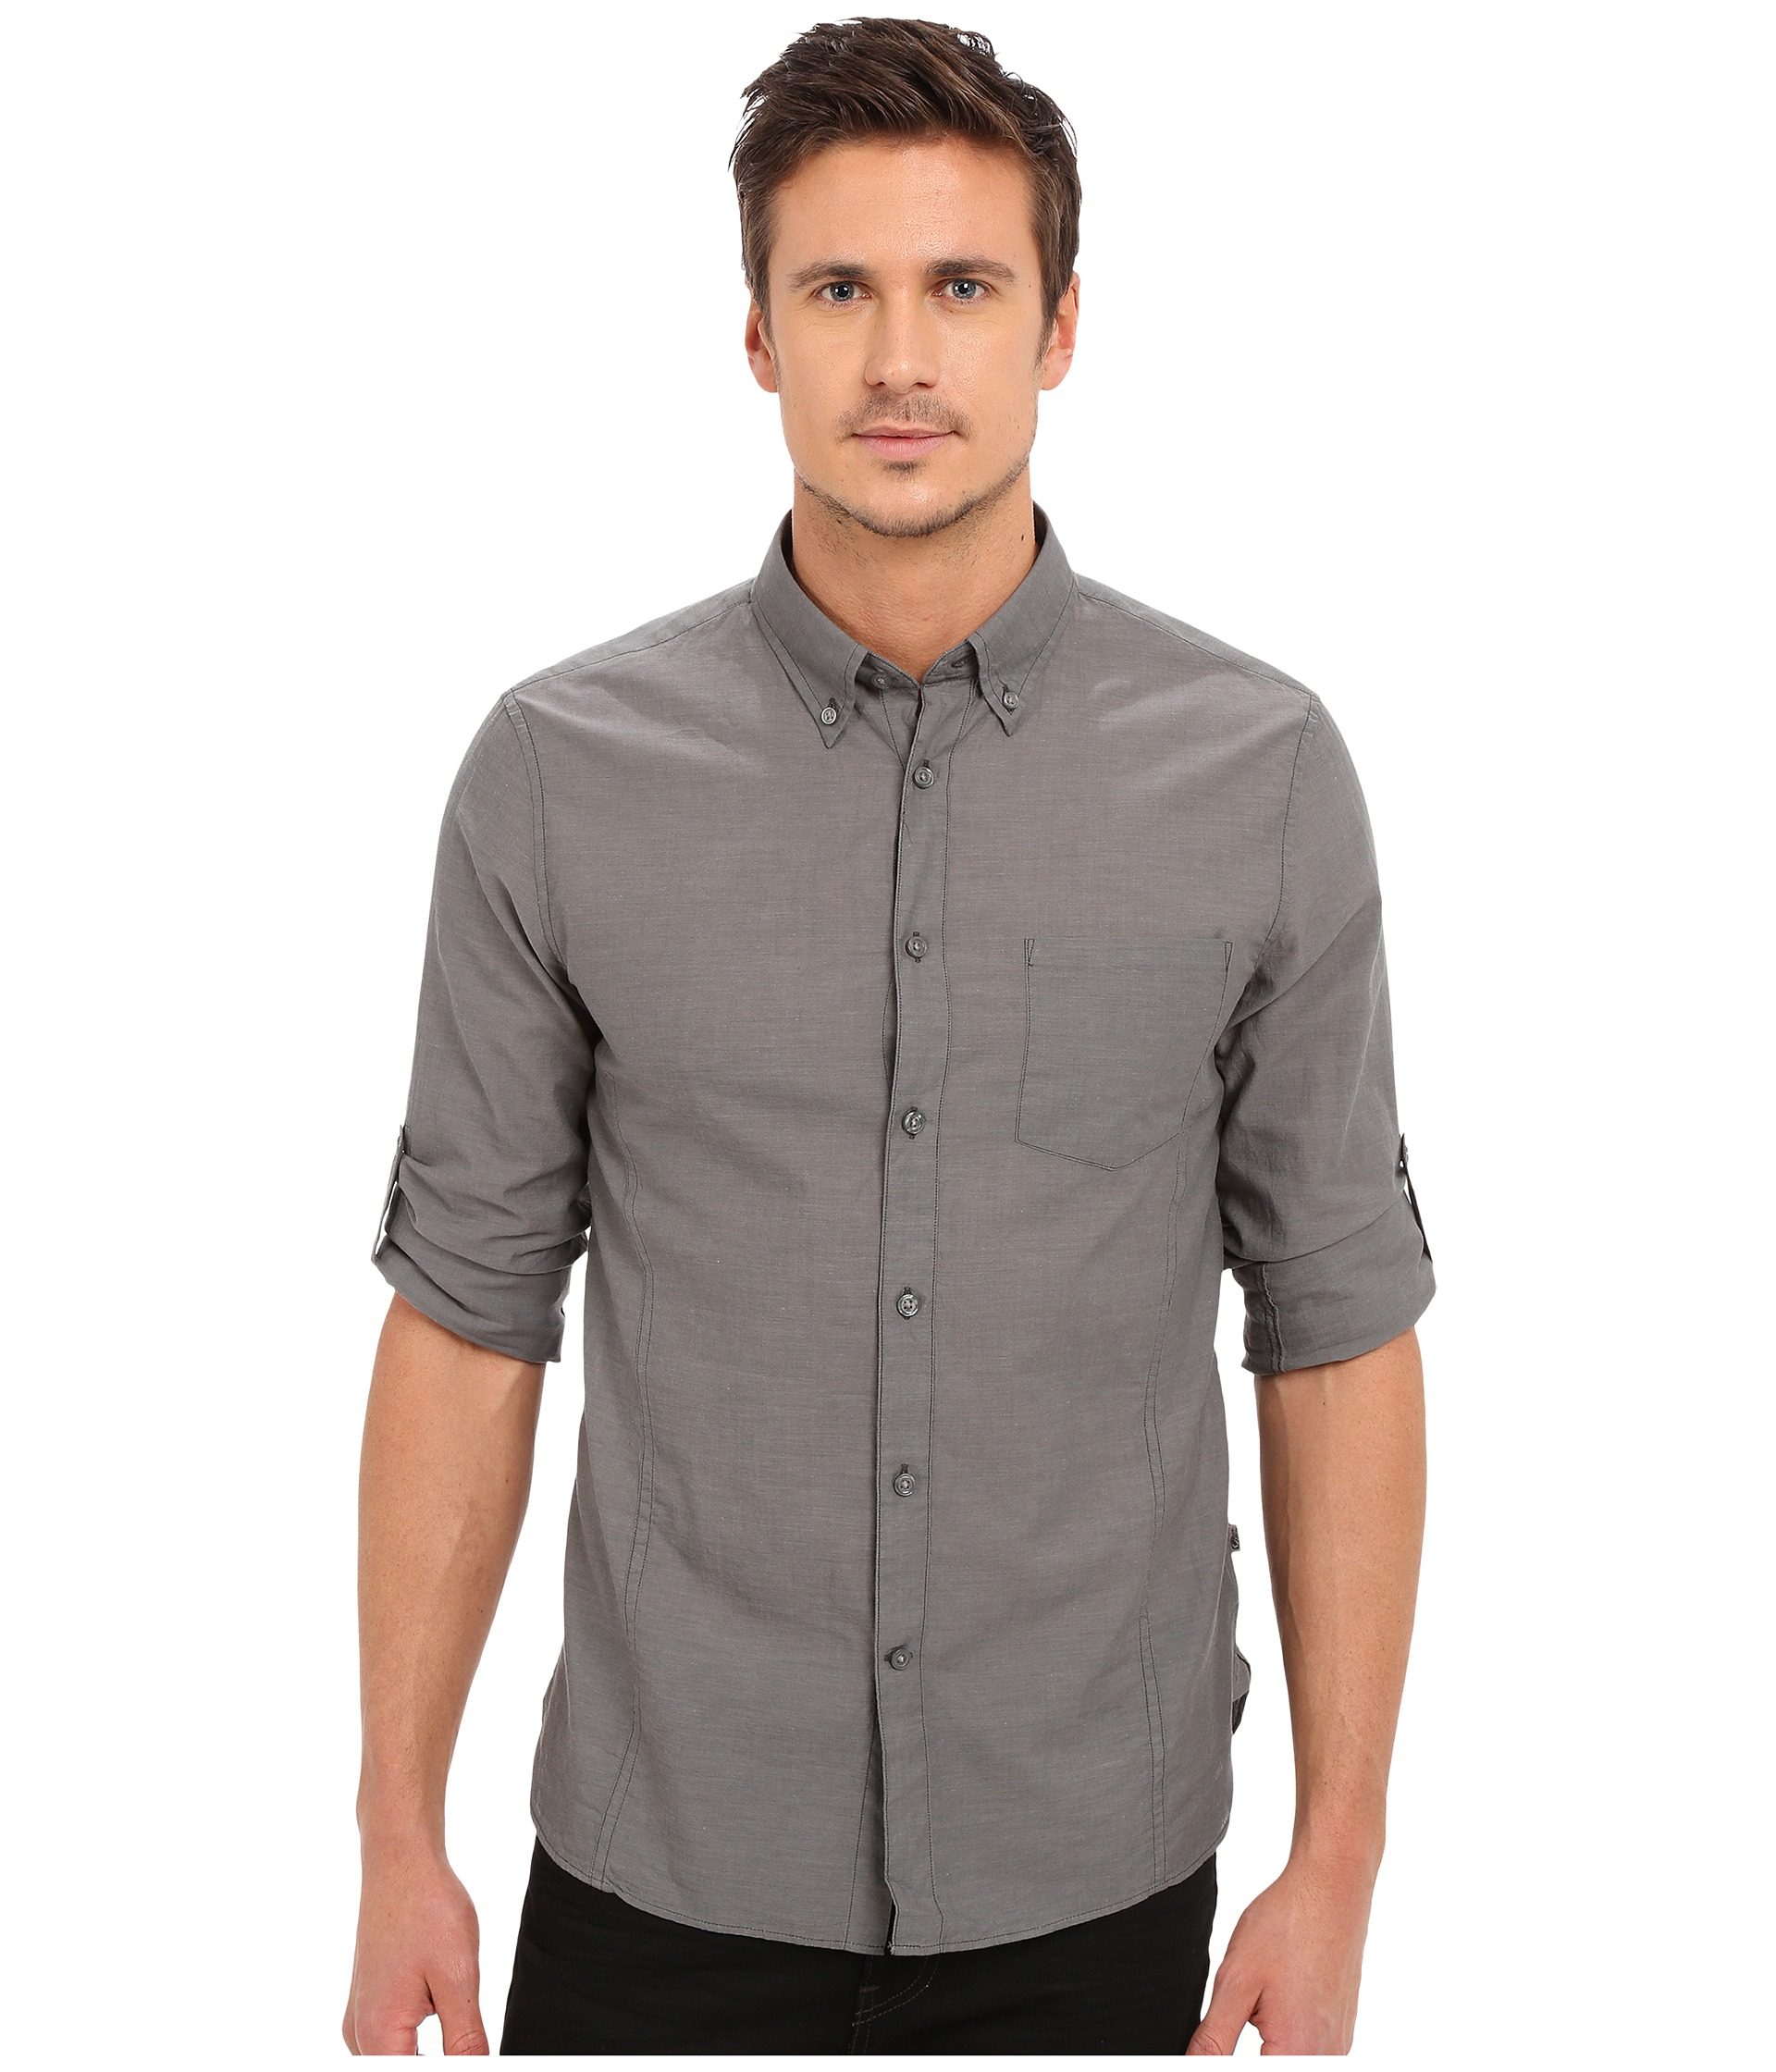 John varvatos roll up sleeve shirt w button down collar for How to roll up sleeves on women s dress shirt